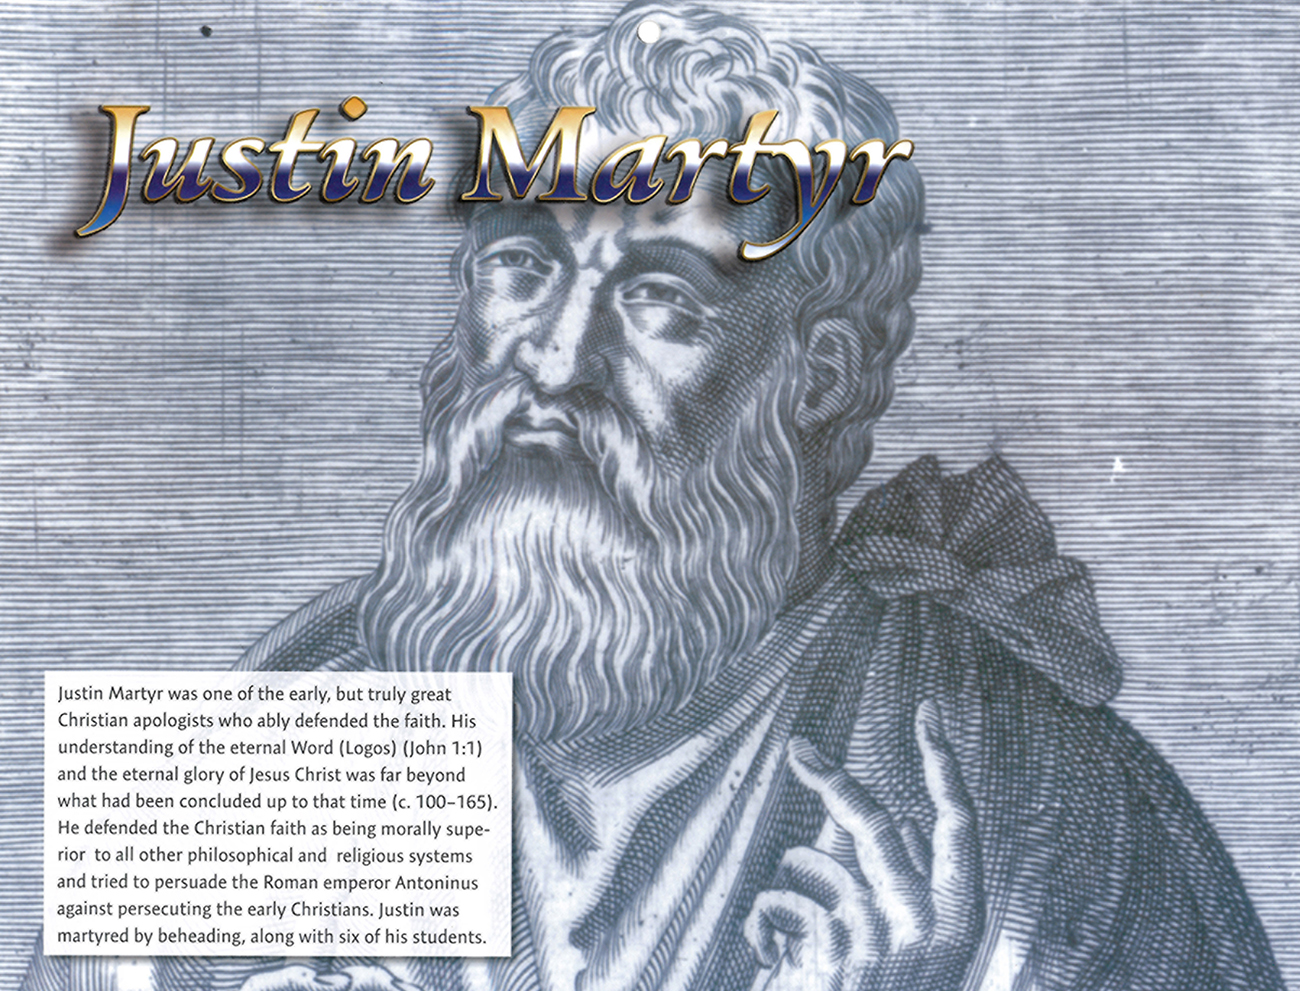 2016 Prophecy Calendar: March - Justin Martyr